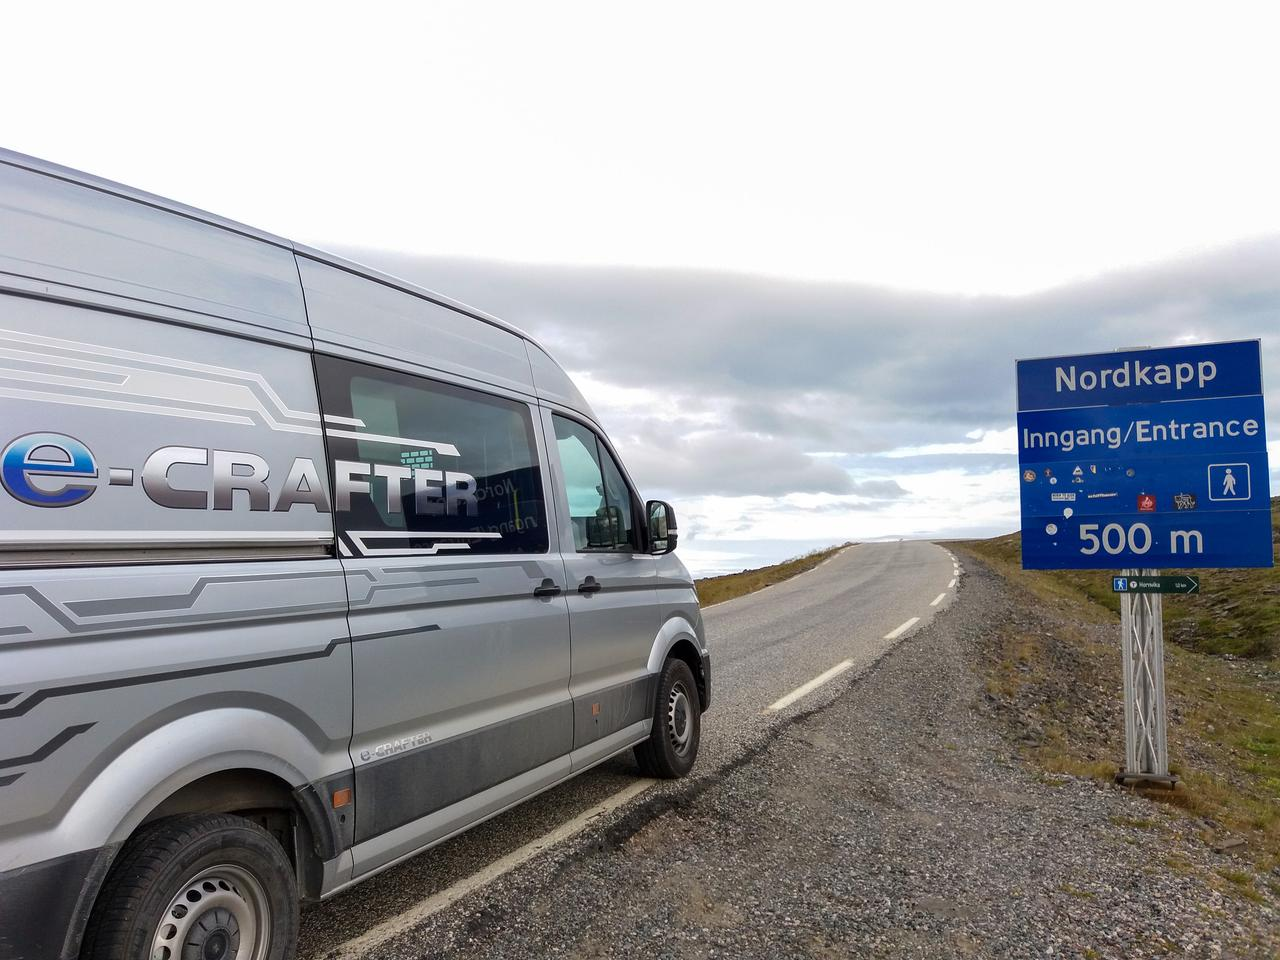 Reaching the destination of Nordkapp (North Cape) on battery power alone